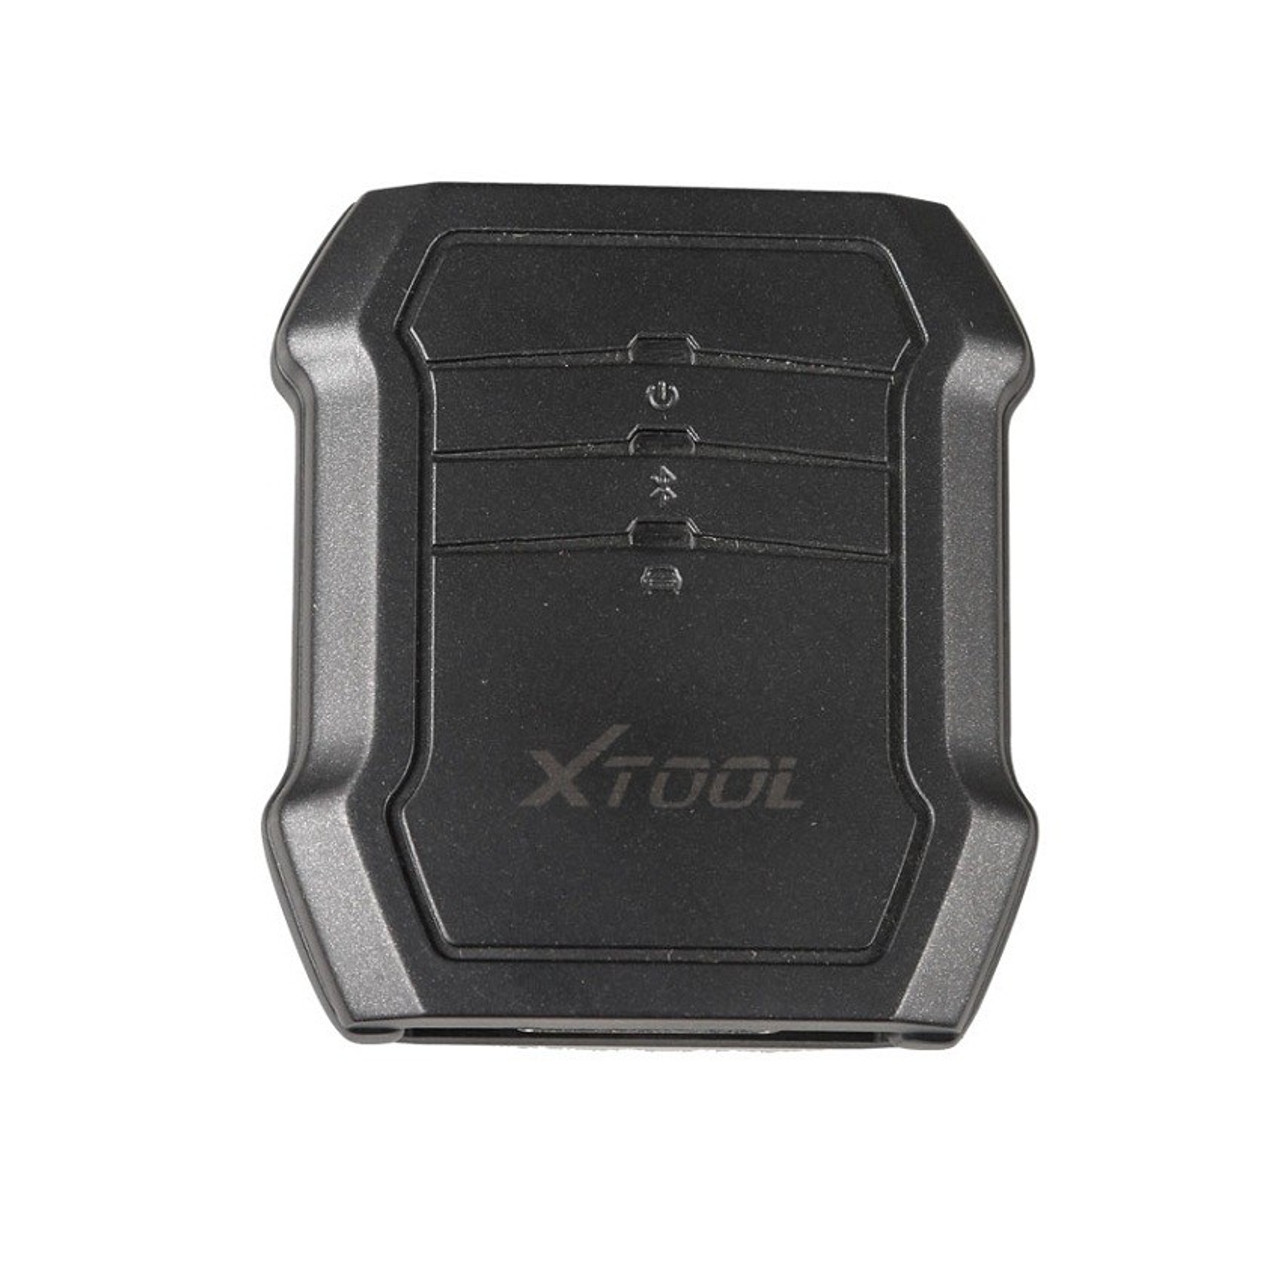 XTOOL X-100 C Bluetooth Auto Key Programmer OBD2 Support for Ford Mazda  Peugeot Citroen